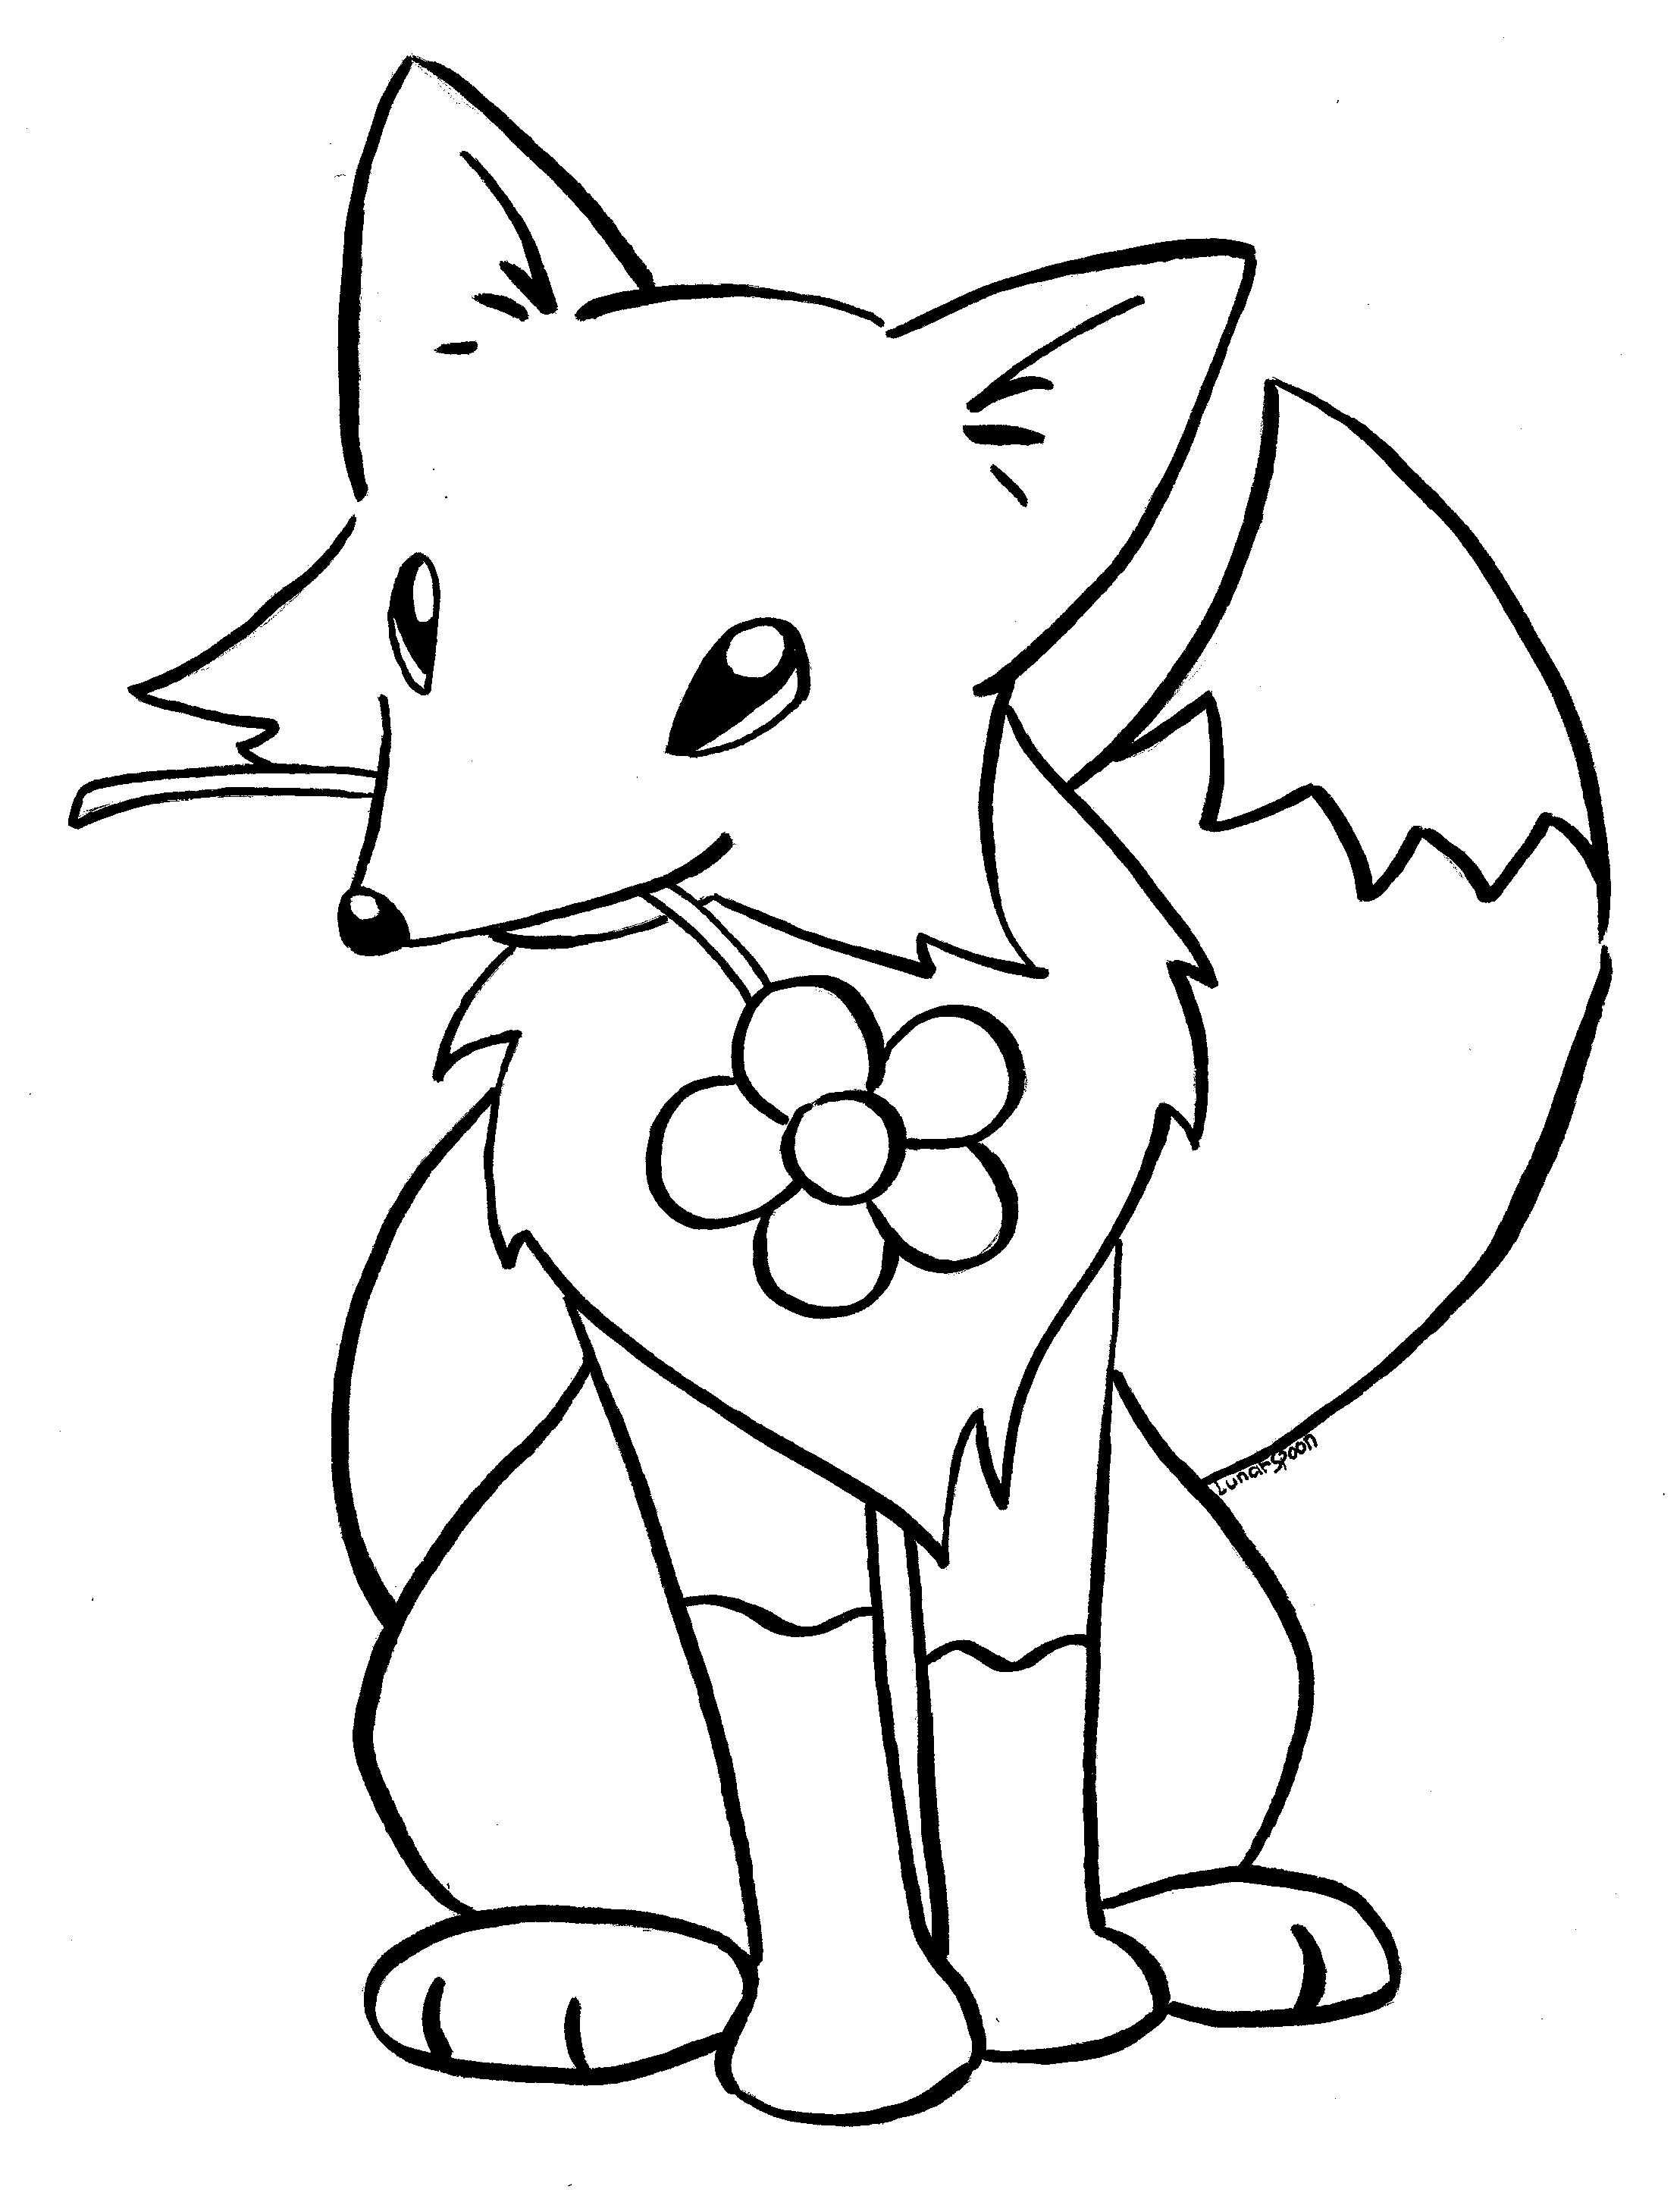 Kitsune Coloring Book Page By Lunarspoon On Deviantart Coloring Pages Booklet